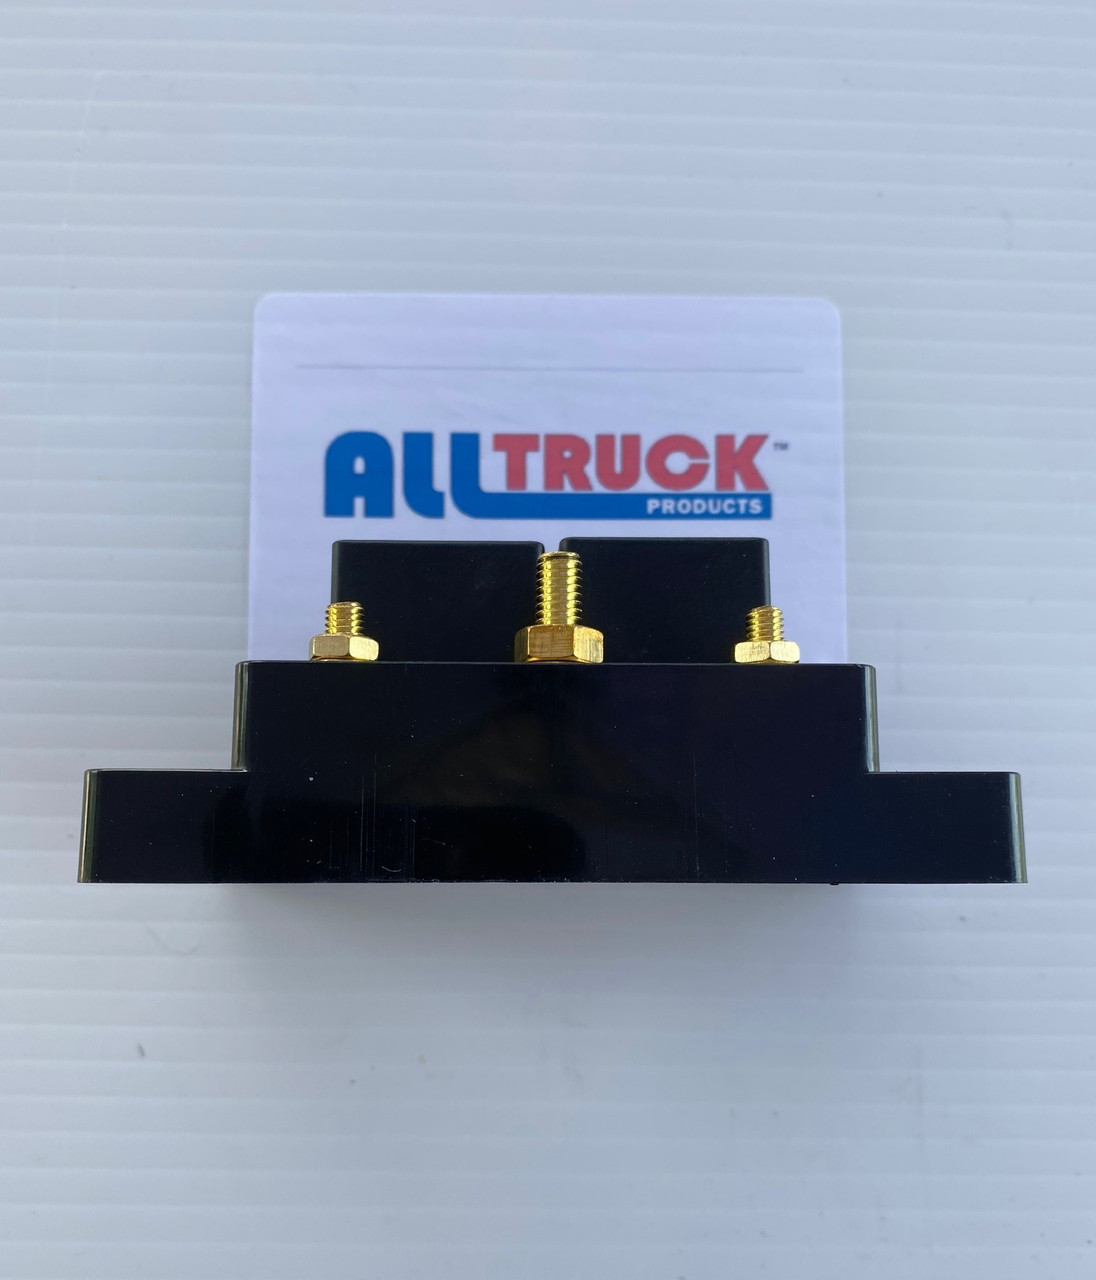 All Truck Products ATP0110 Tarp Motor or Winch Motor - Forward/Reverse Relay Module Six Terminal 12VDC 80 AMPS Picture # 3